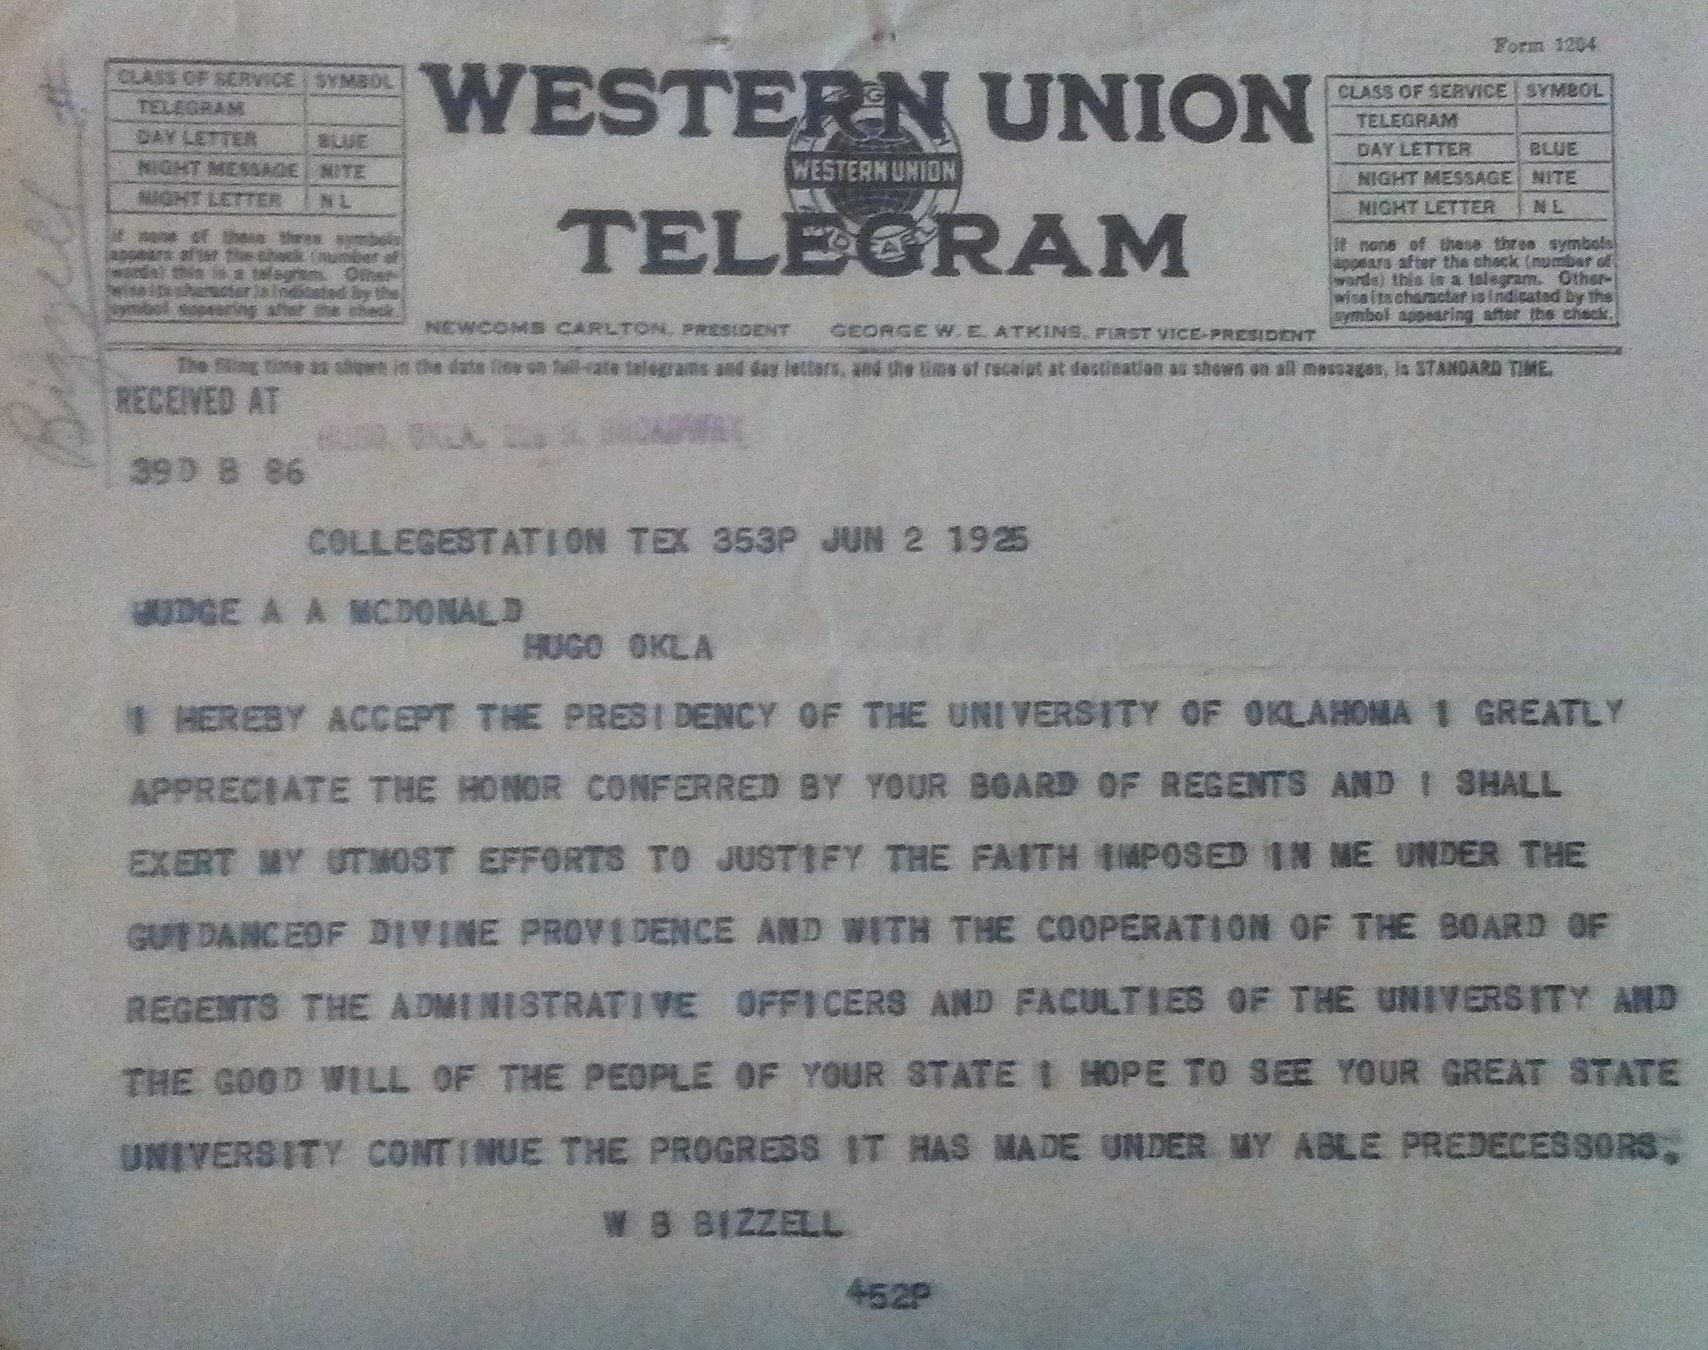 The telegram sent by William Bizzell accepting the position as President of the University of Oklahoma.